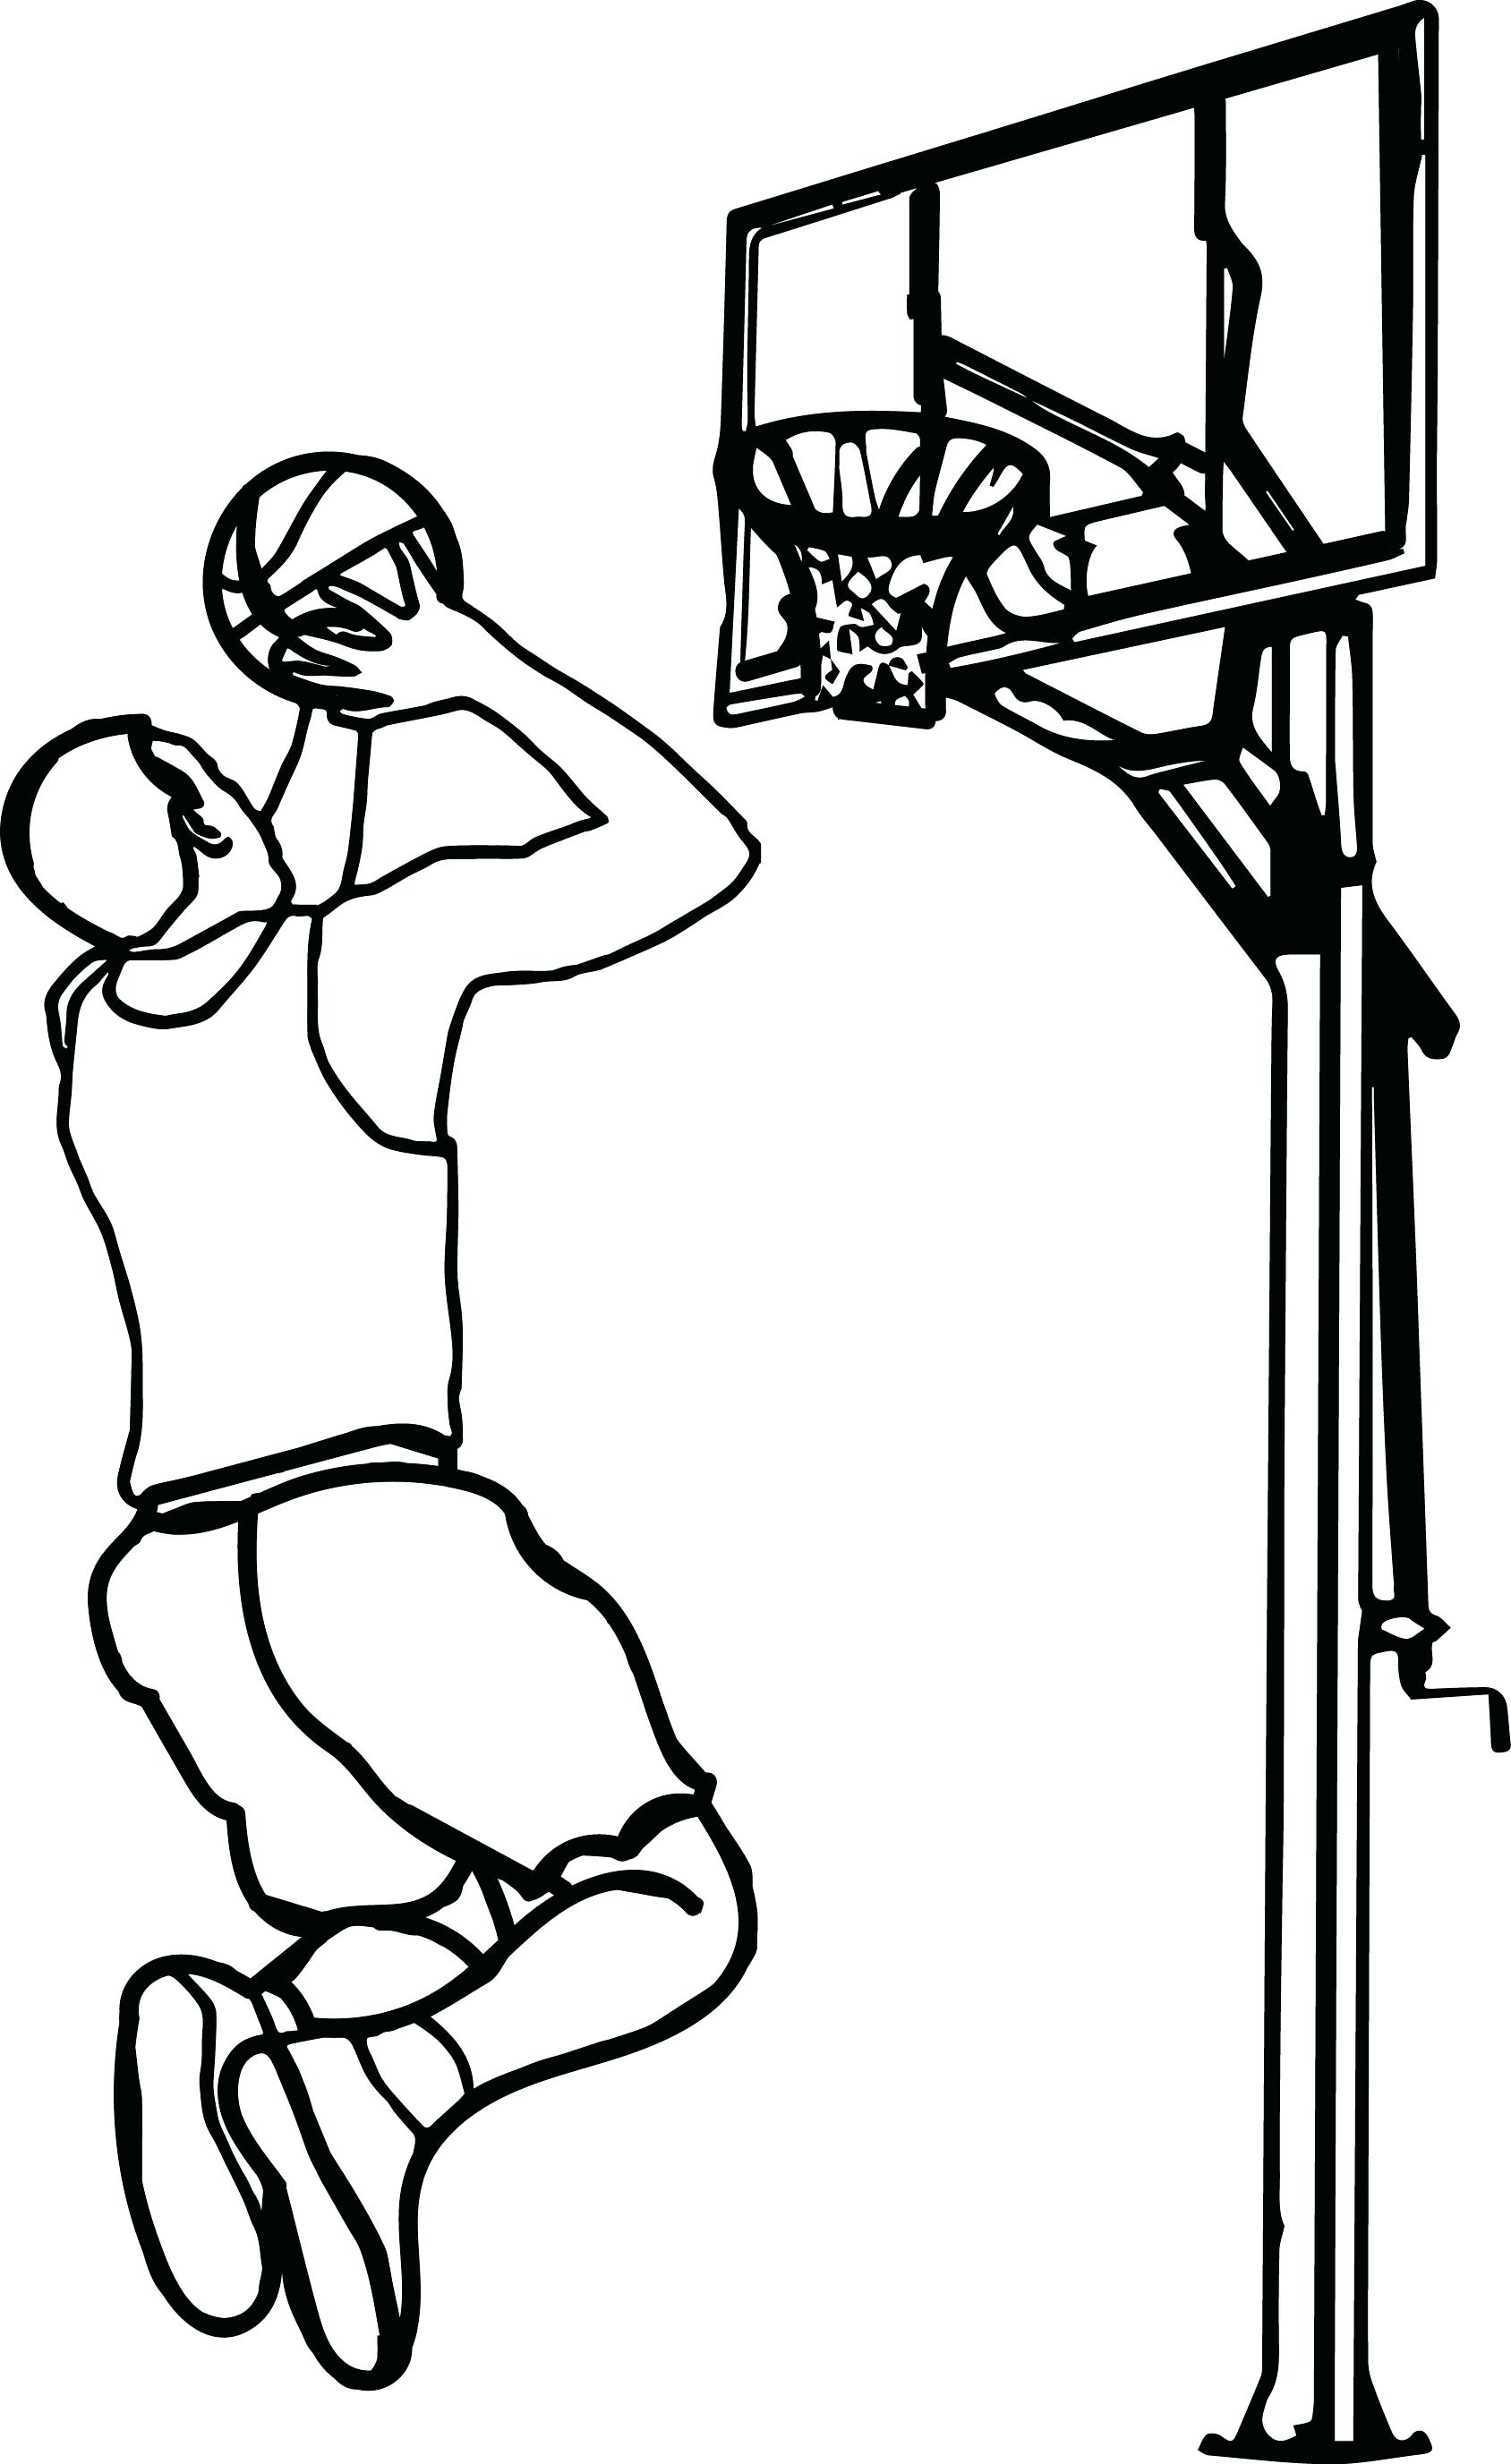 1688x2753 Coloring Basketball Hoop Coloring Page Pages Diagrams Play